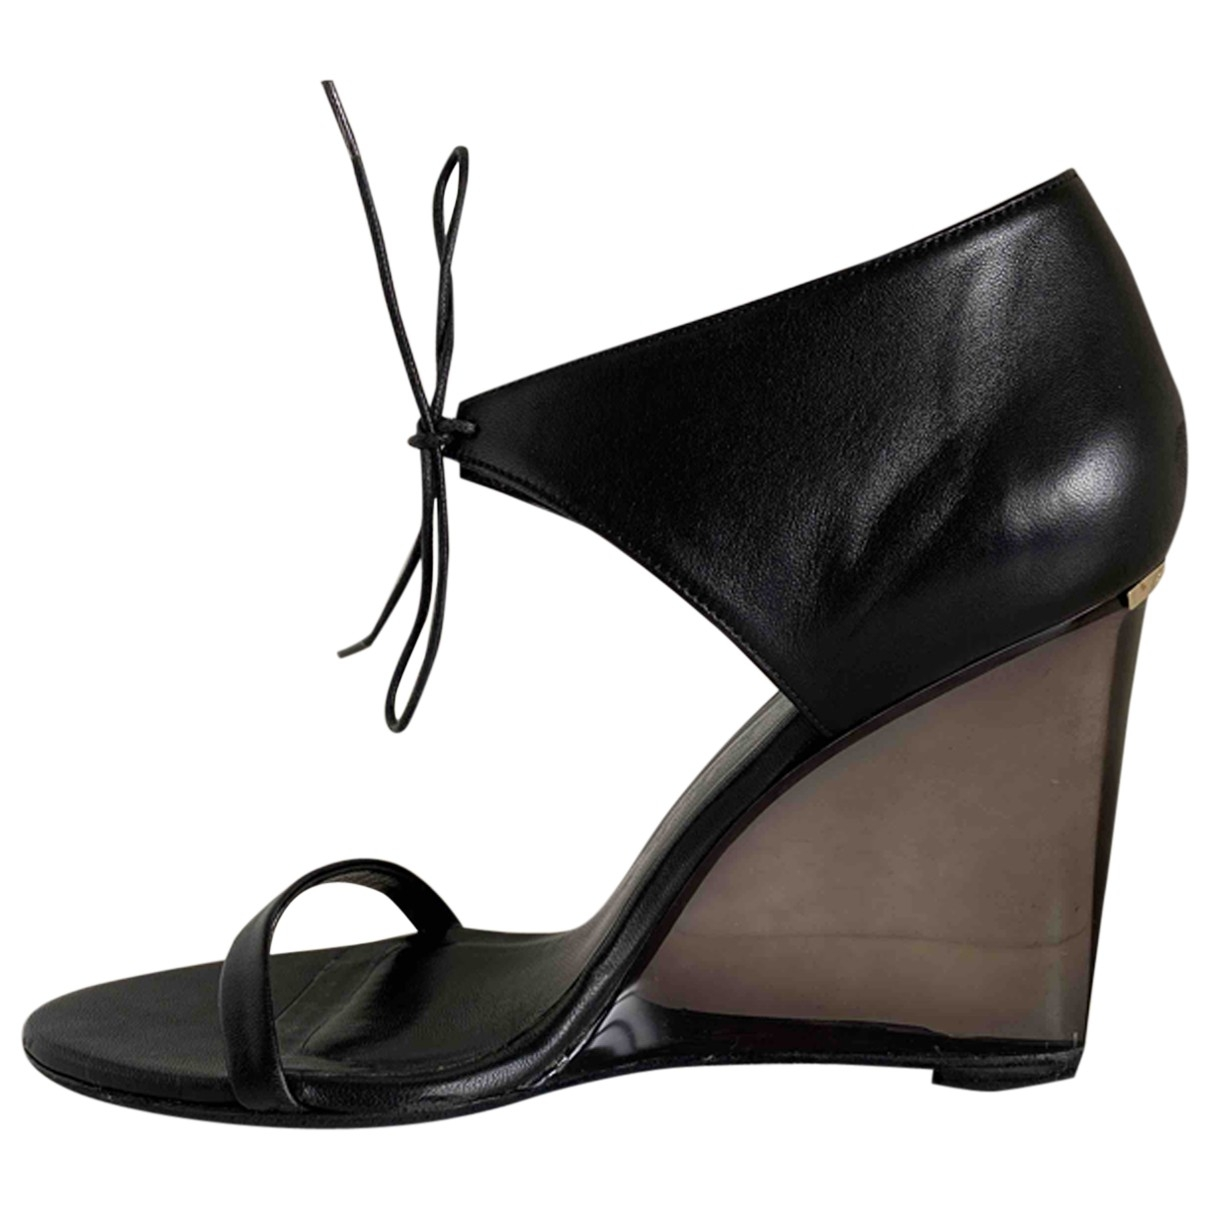 Burberry \N Black Leather Sandals for Women 37.5 EU